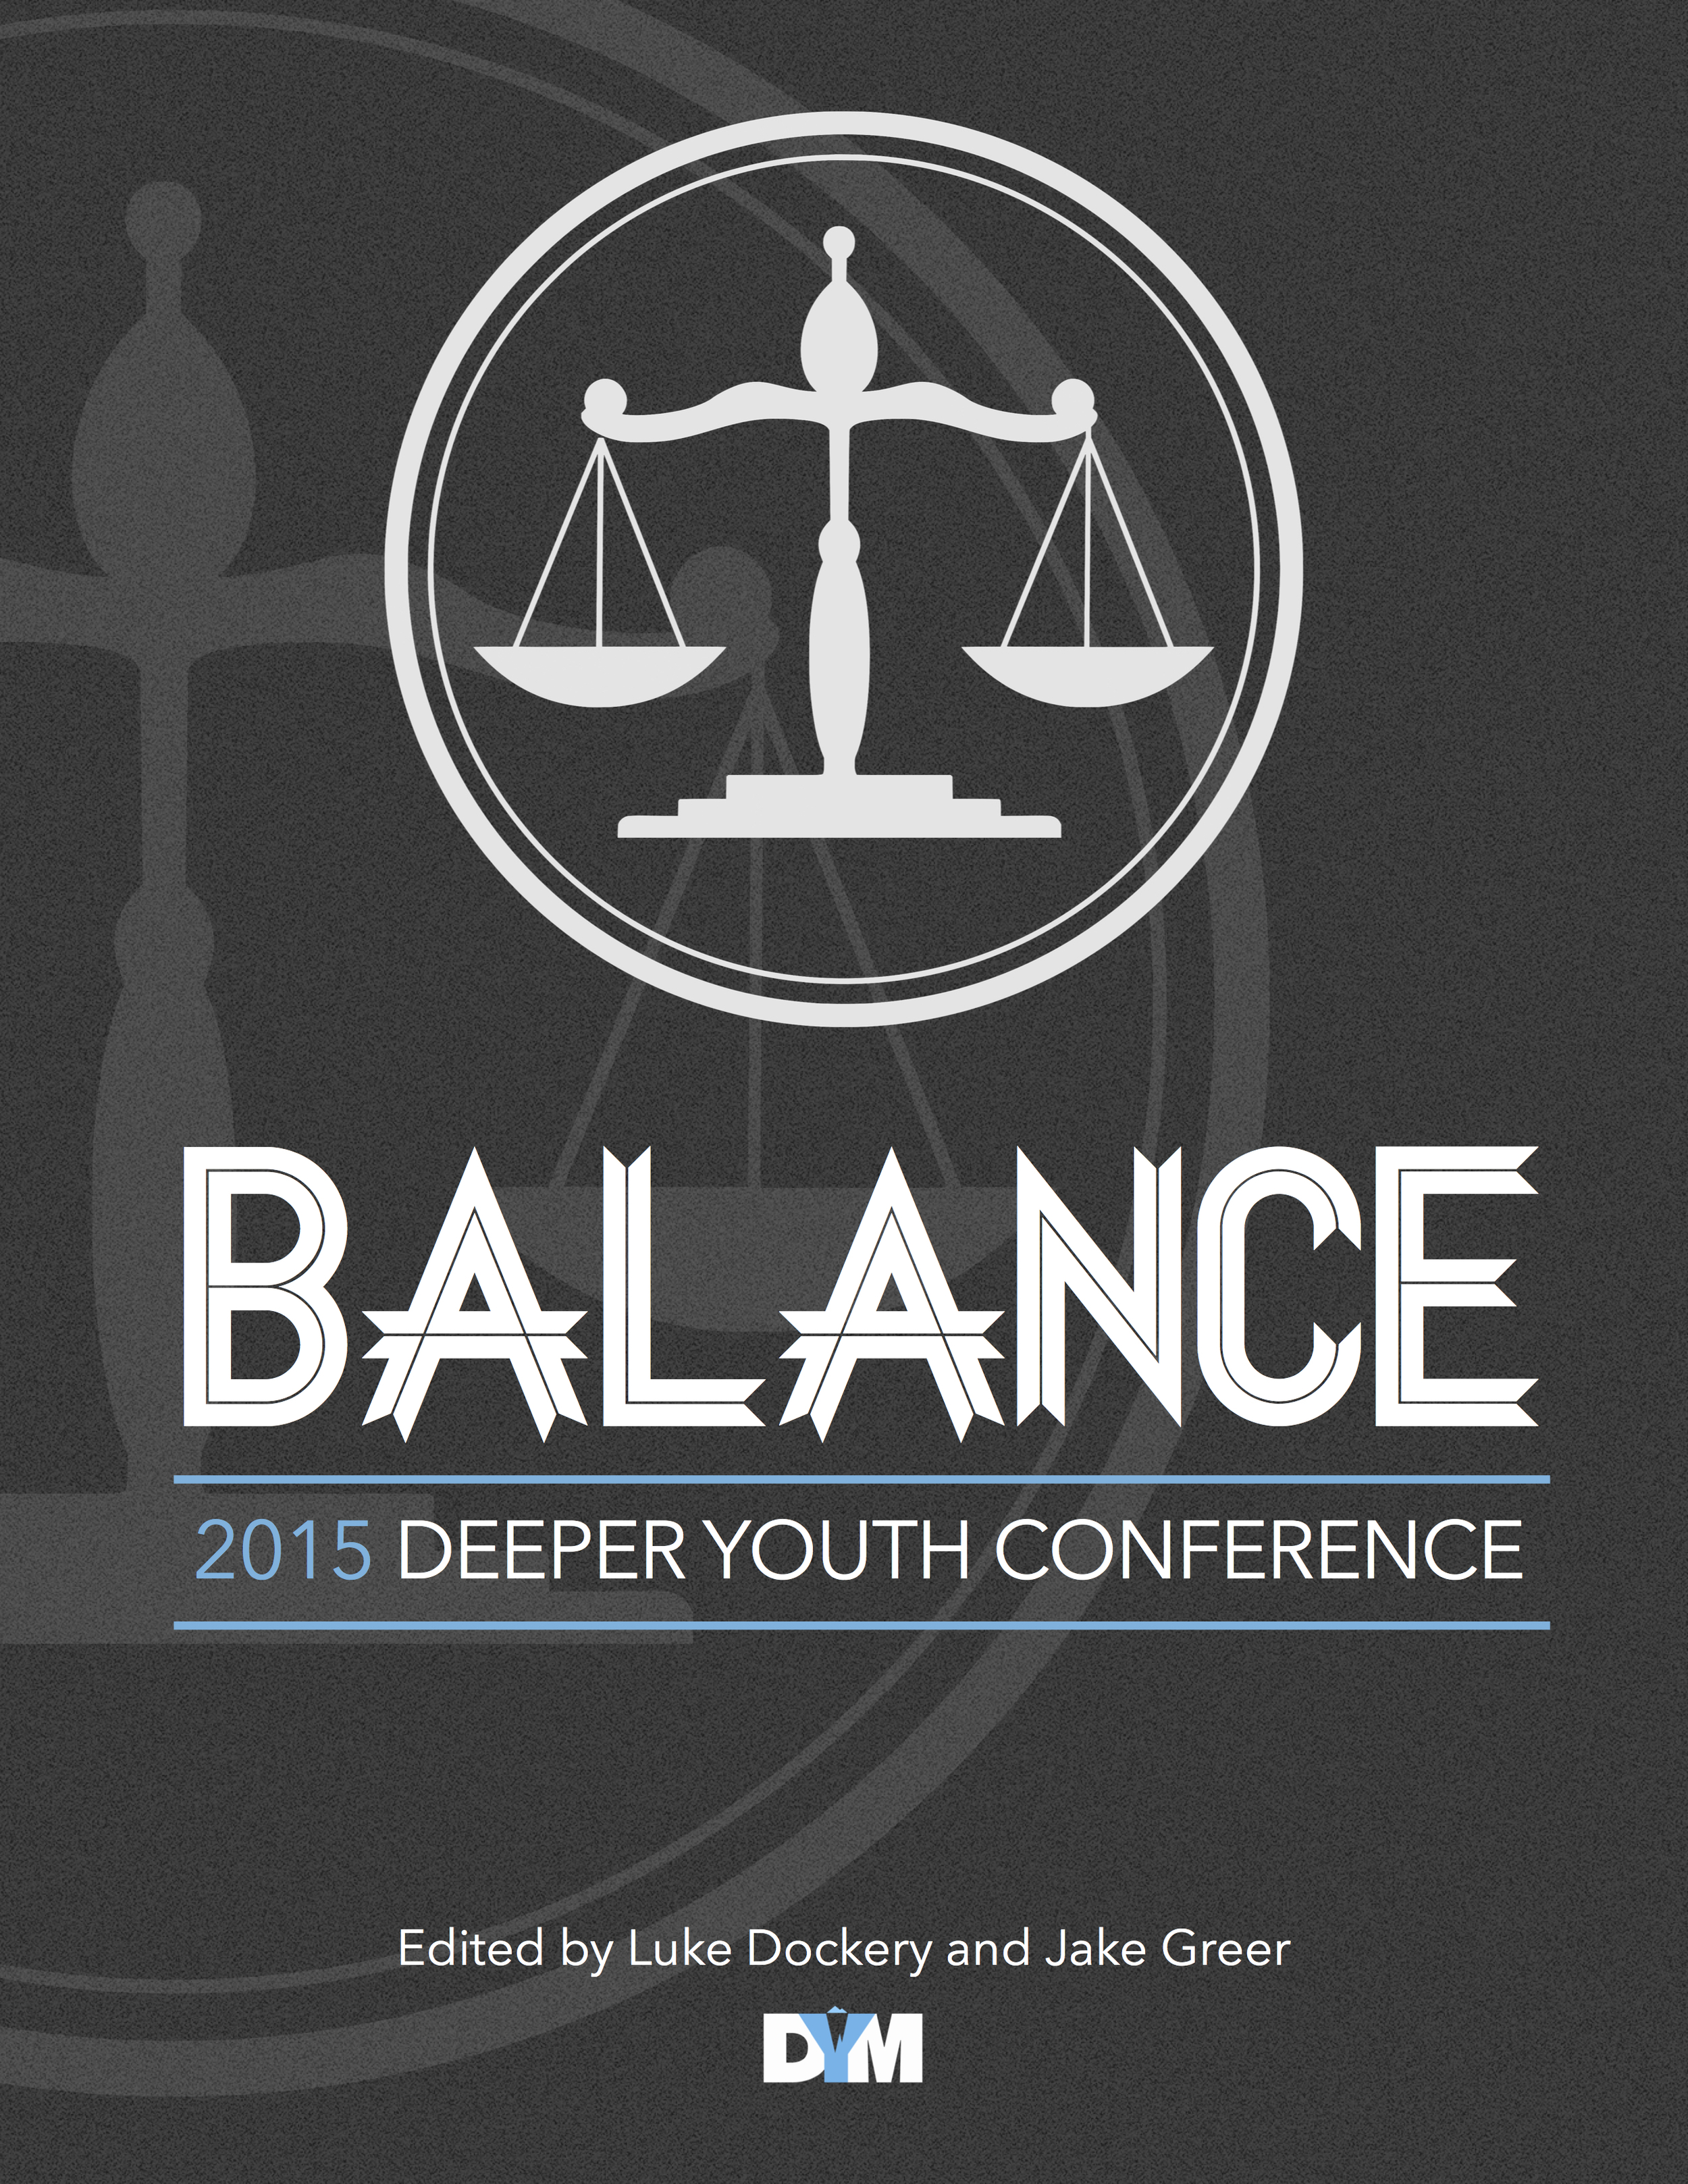 Balance: 2015 Deeper Youth Conference